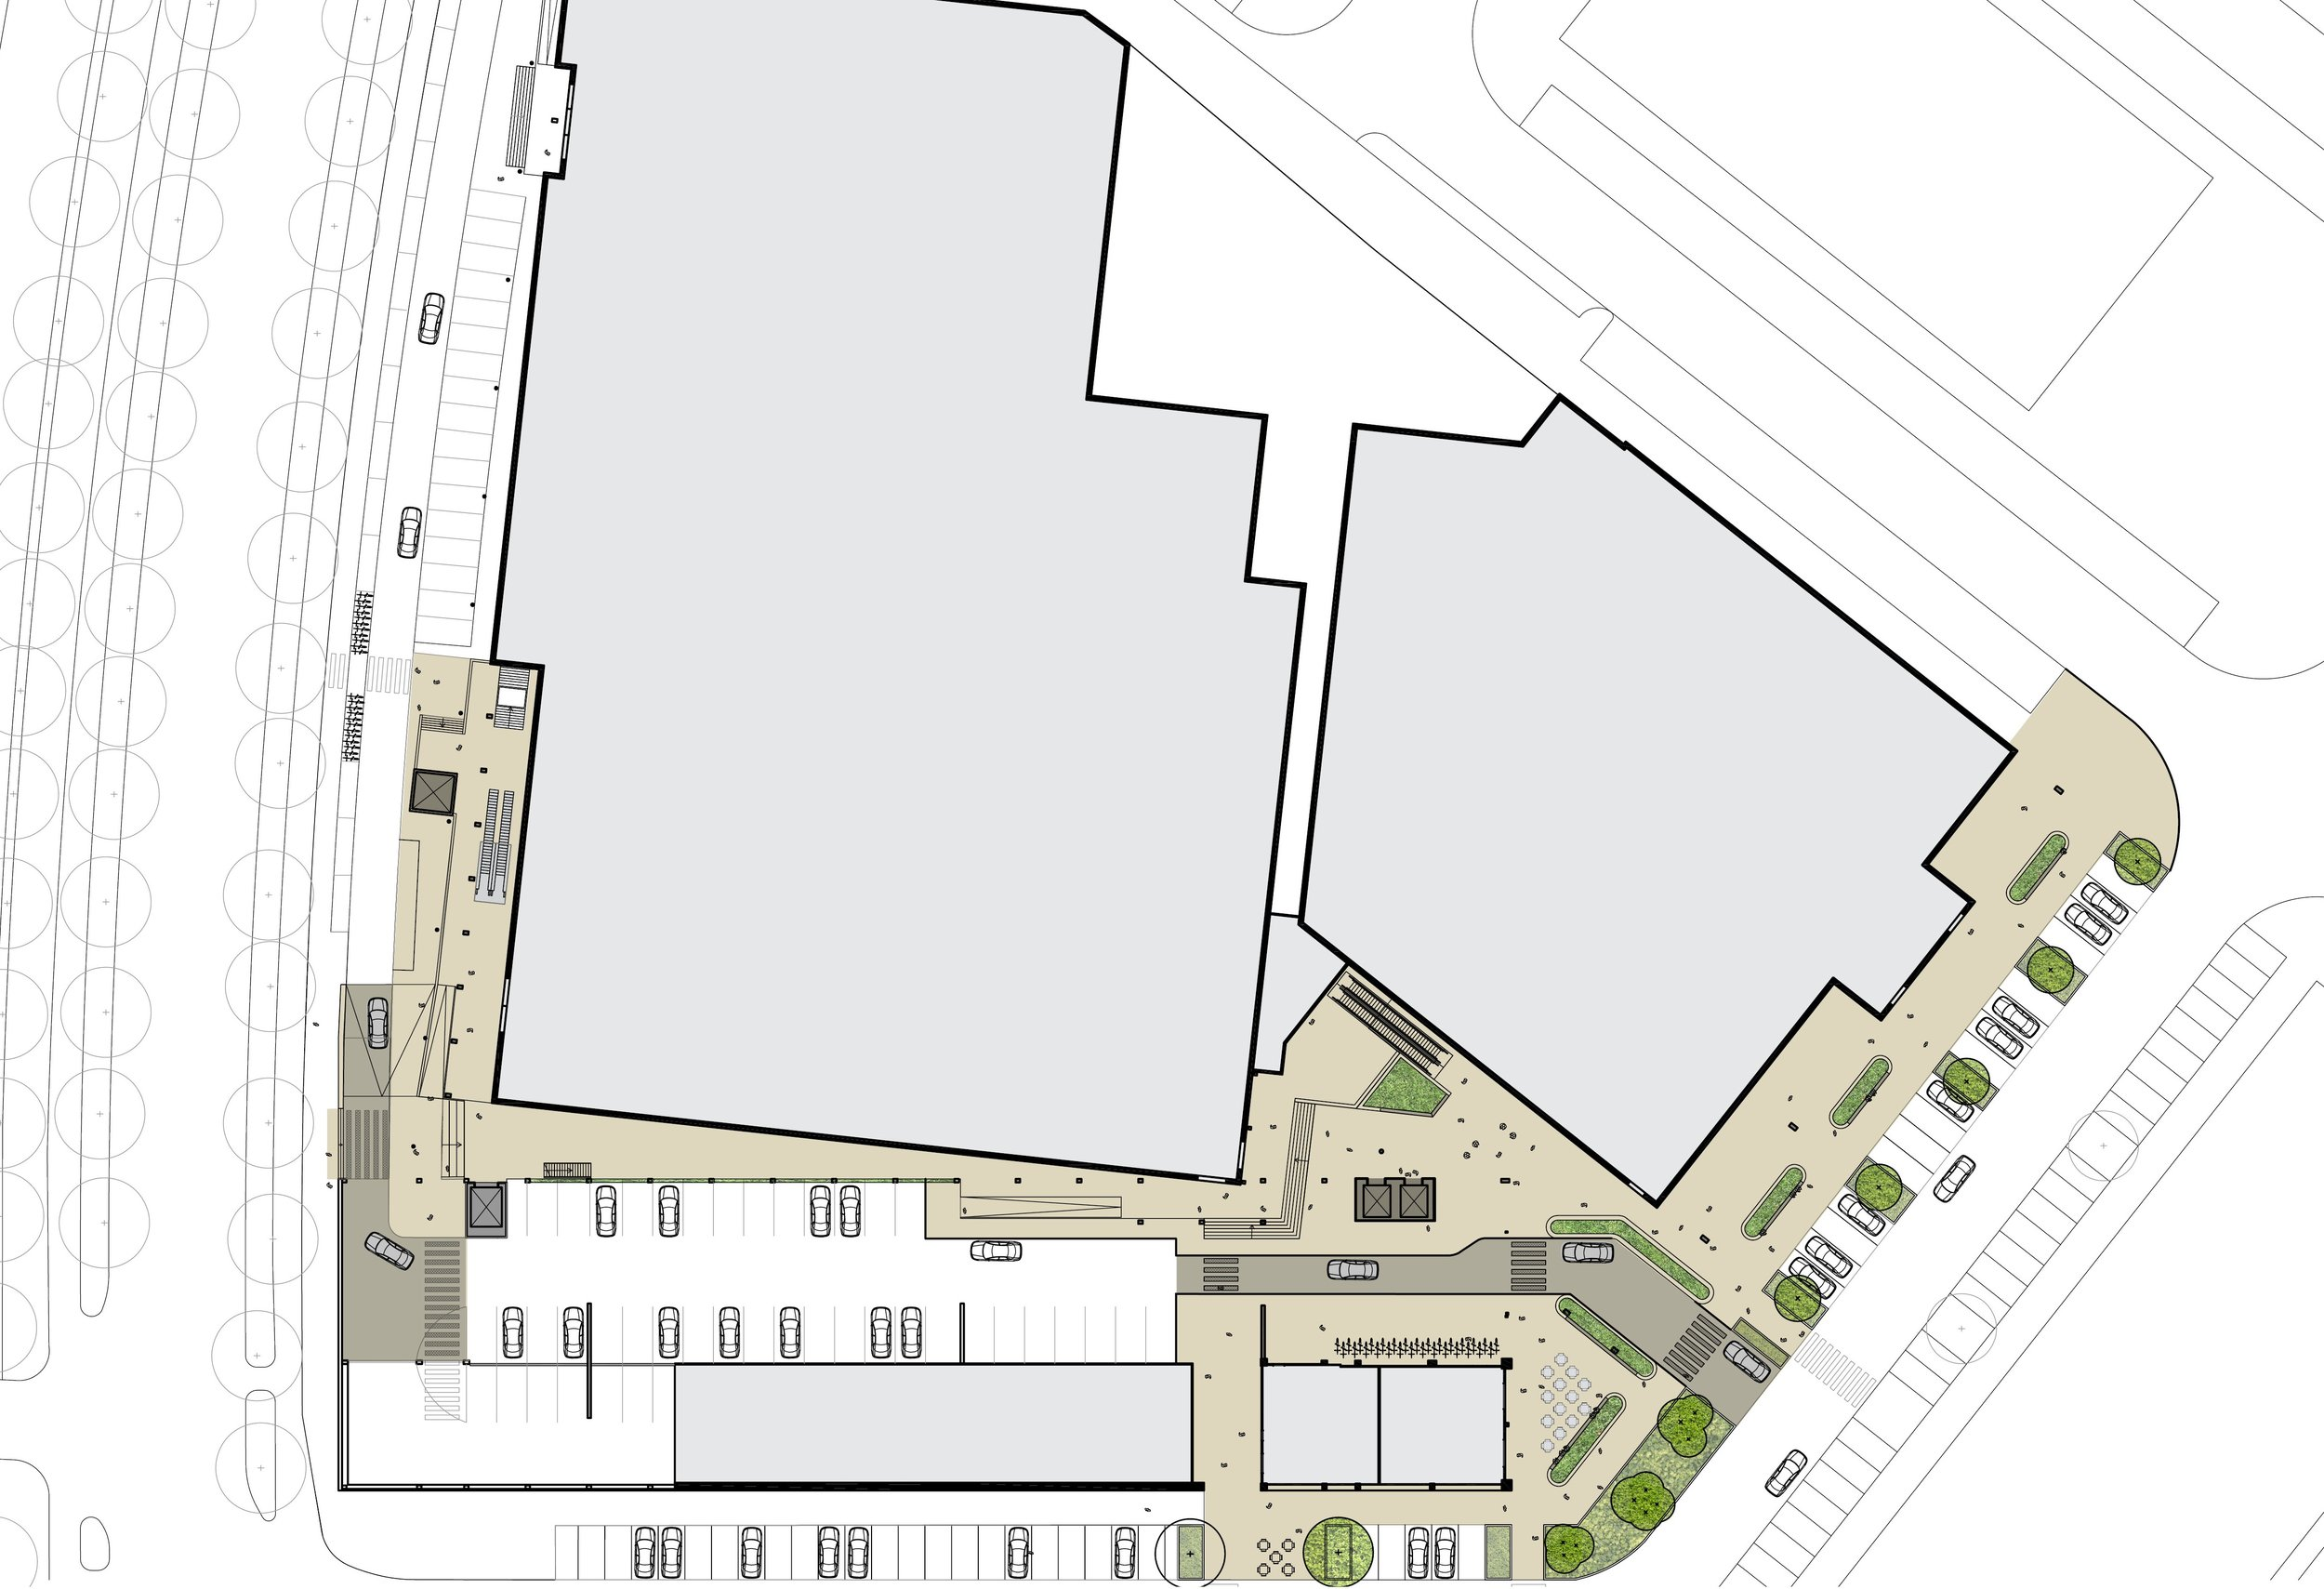 plan for the upgrading of Akerpoort